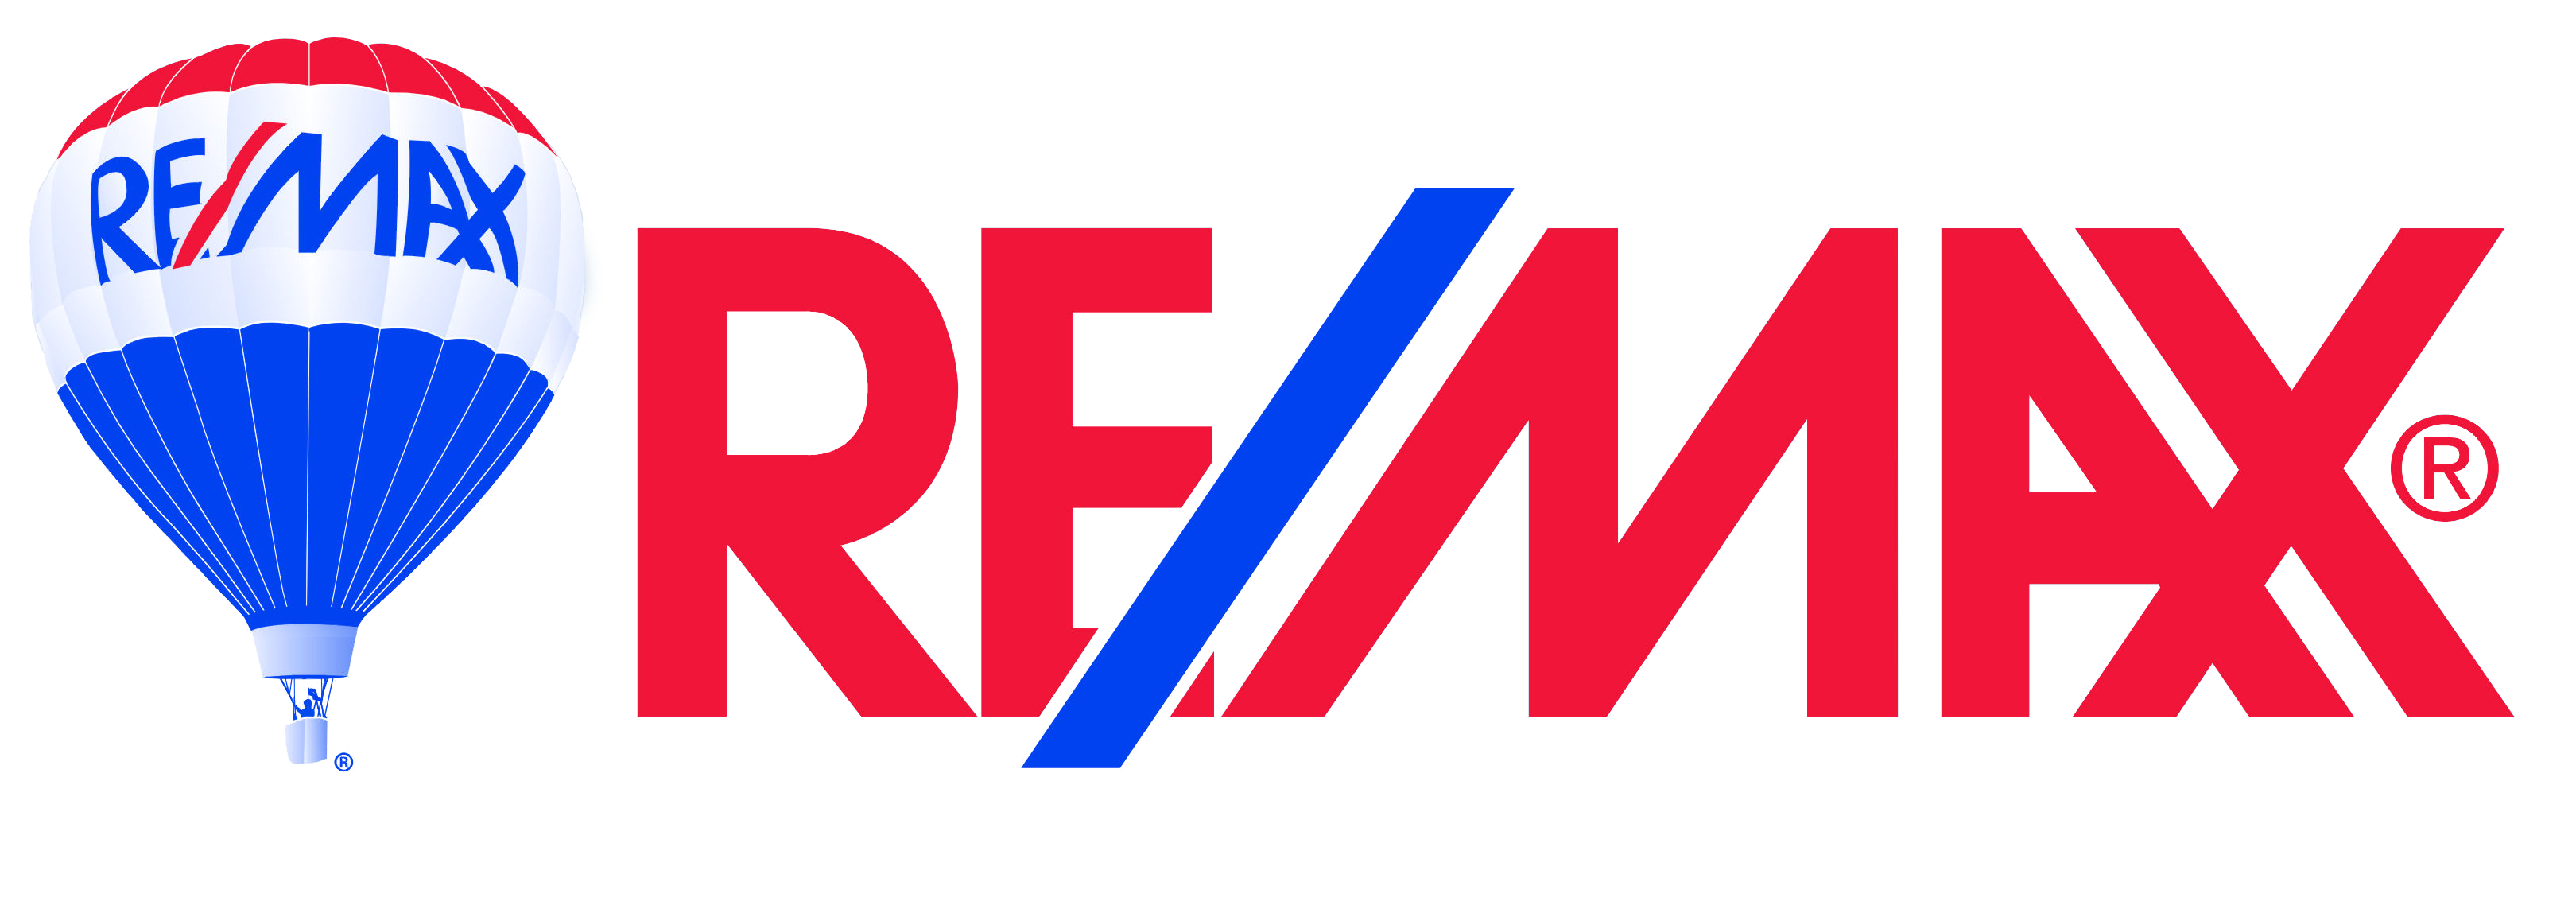 Remax 2001 Inc.